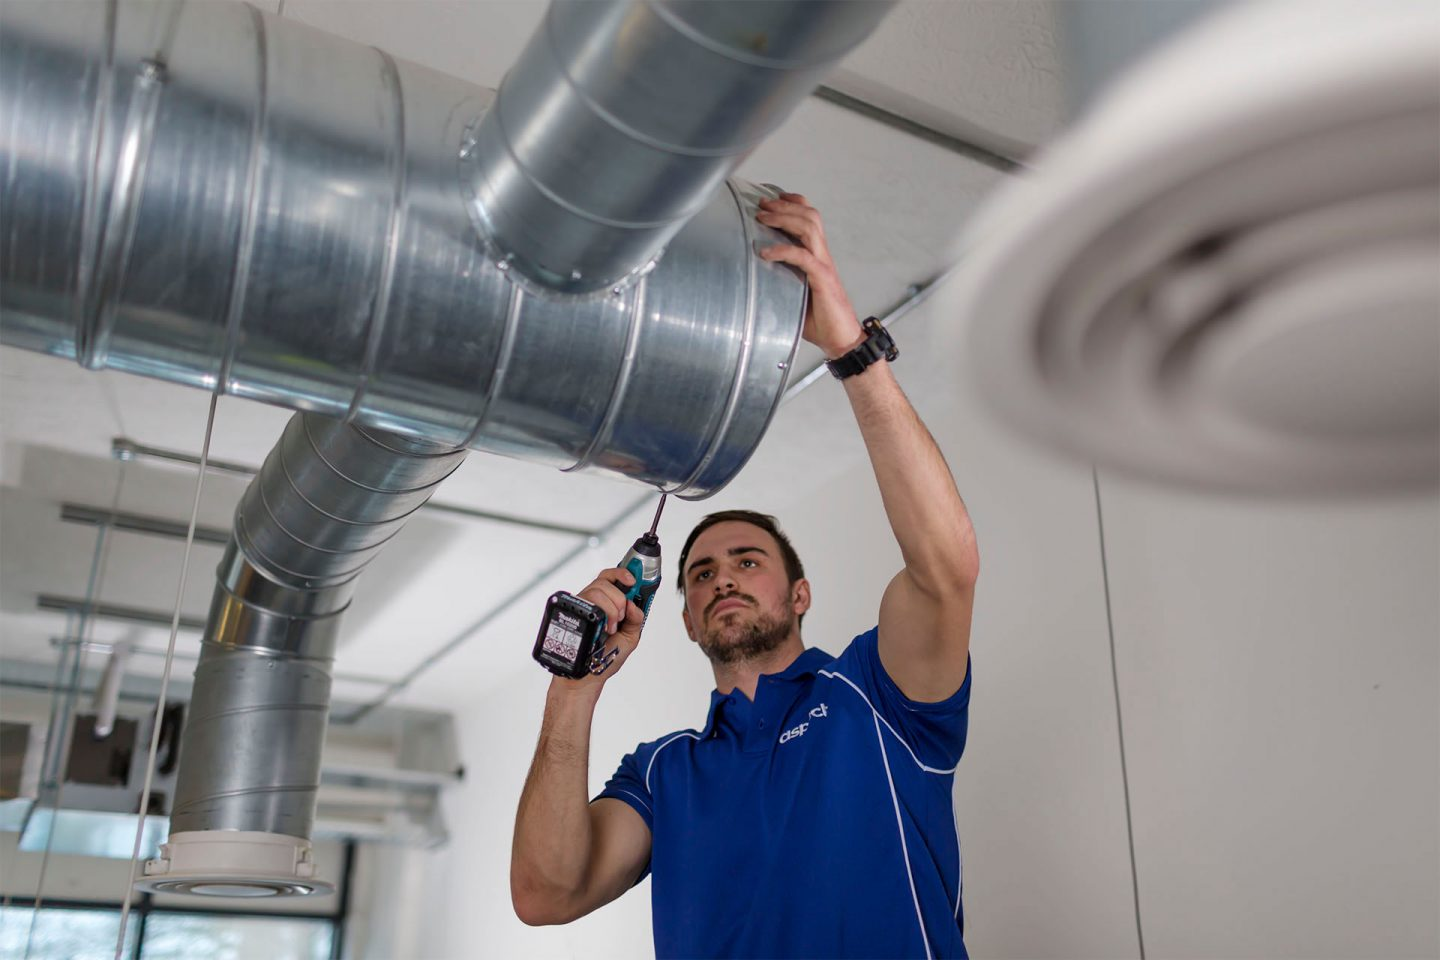 Ventilation system installation and repairs